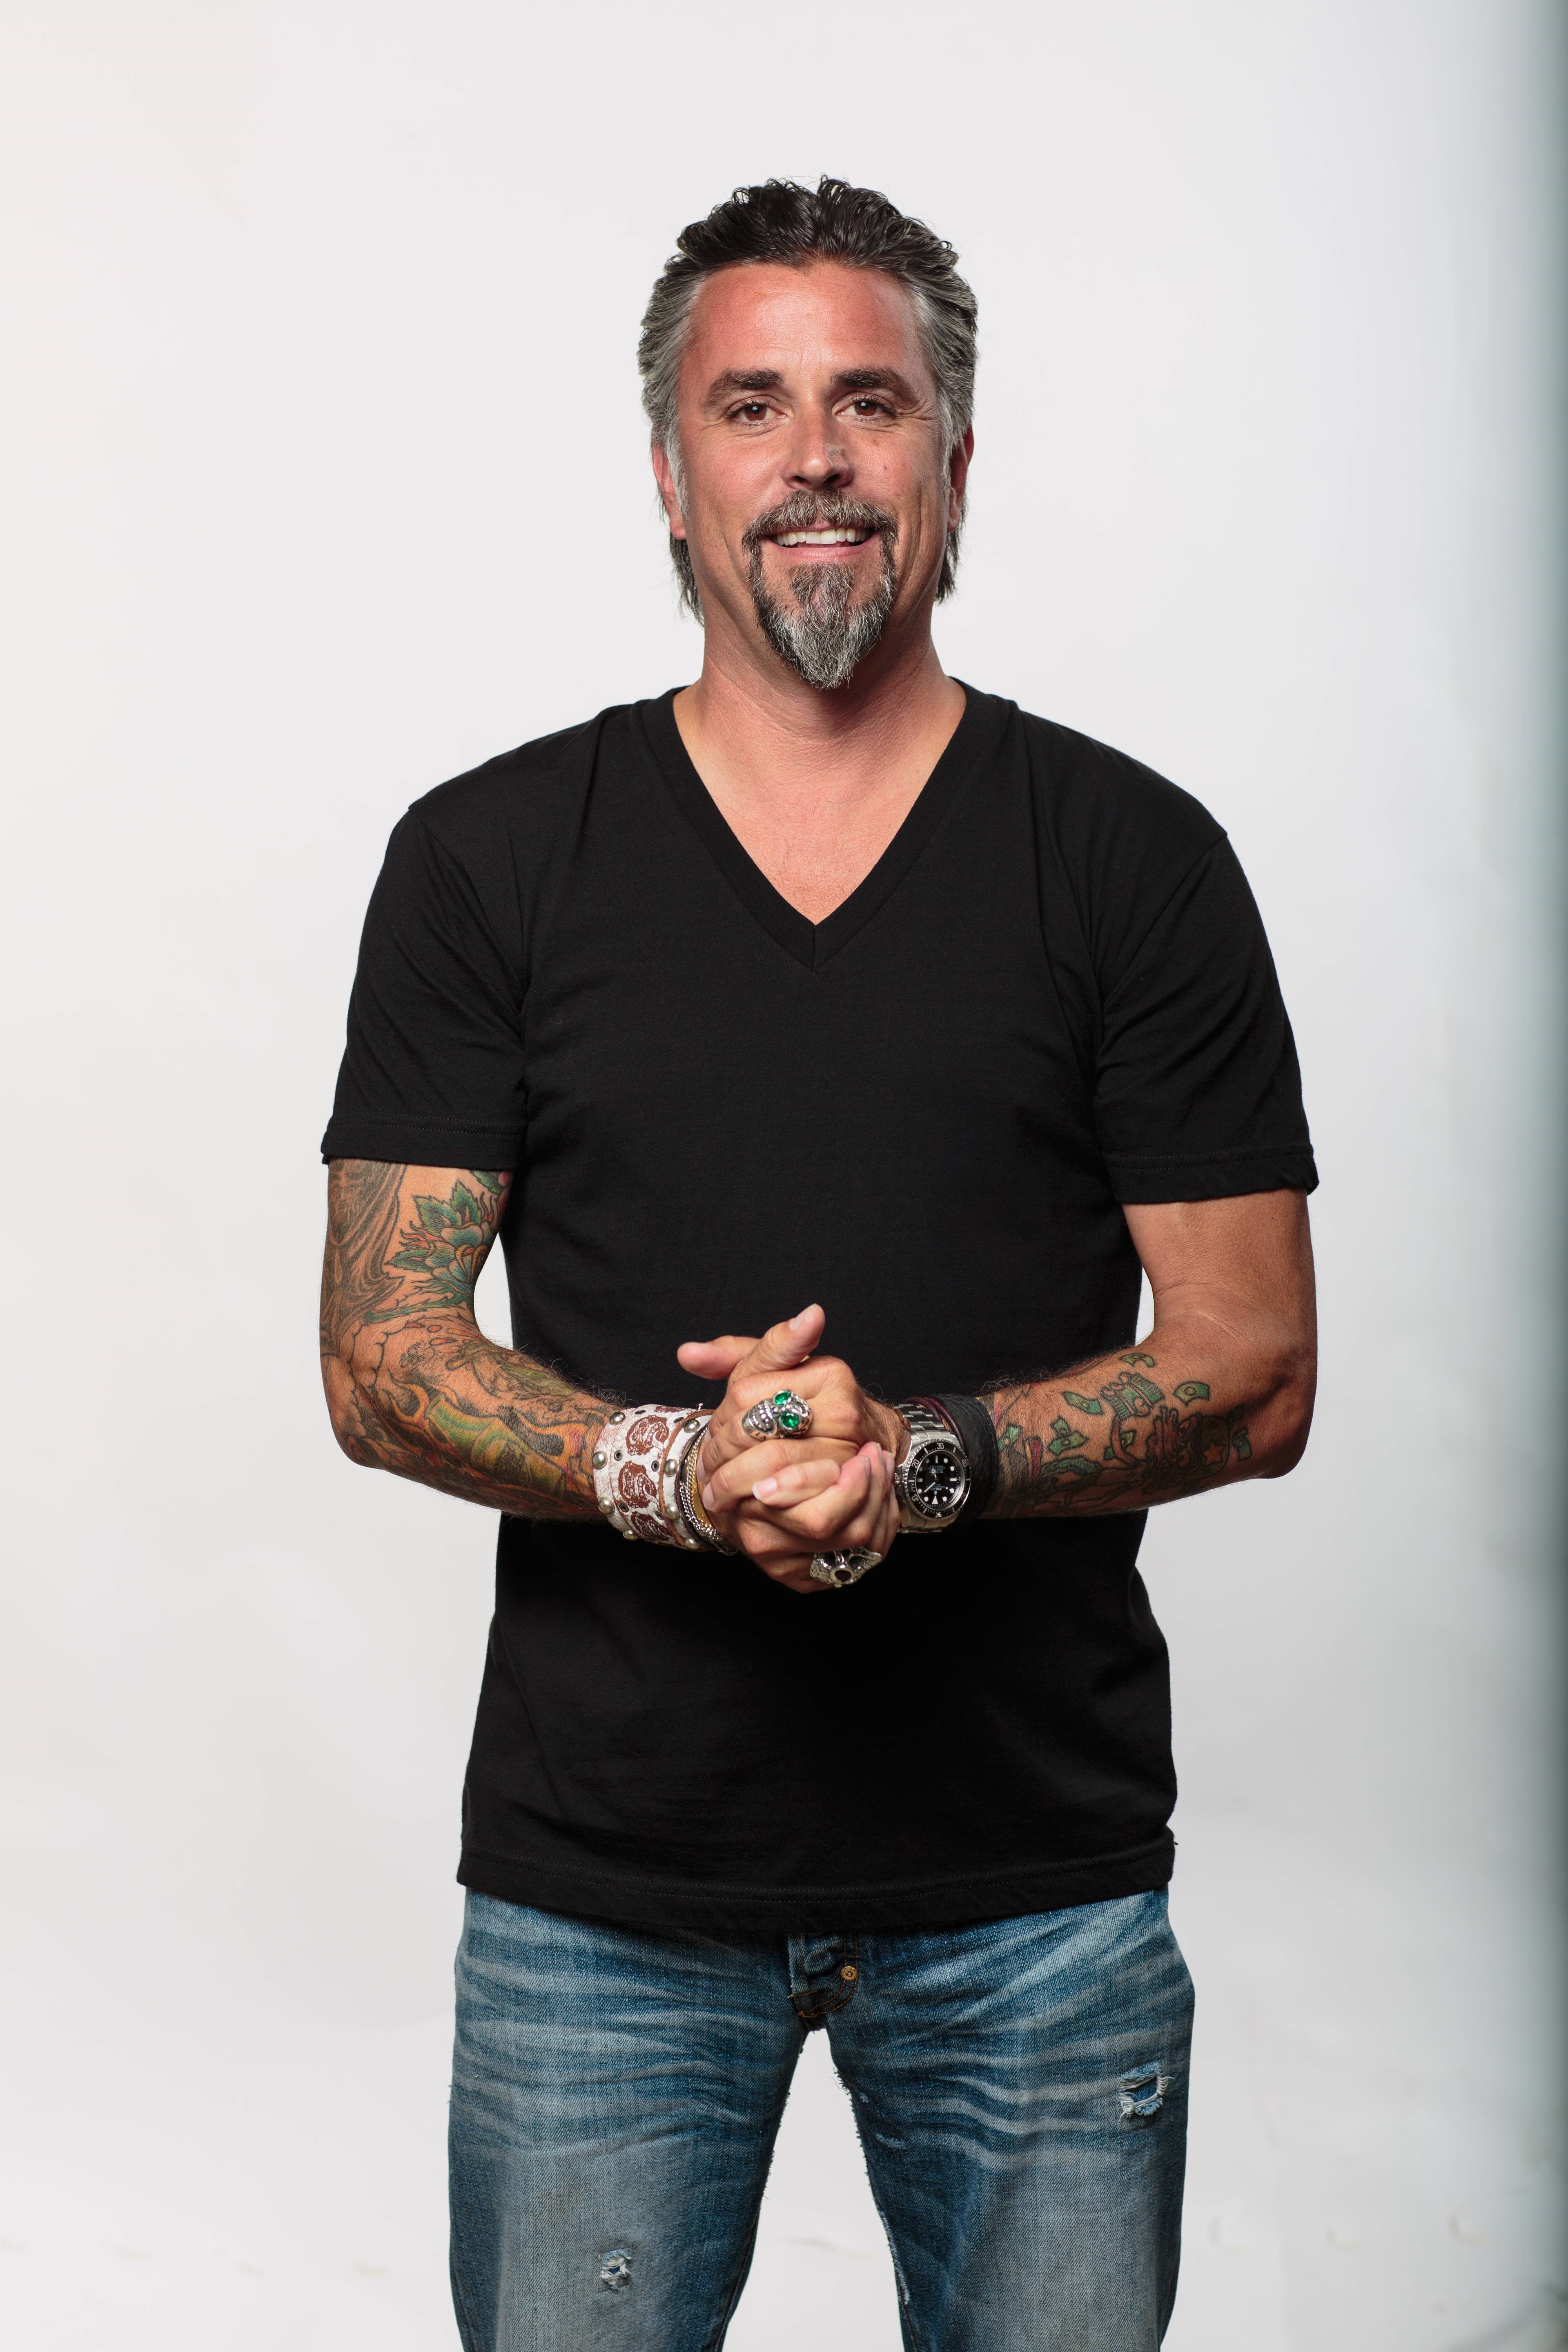 Richard Rawlings to Keynote PRSM2017 National Conference